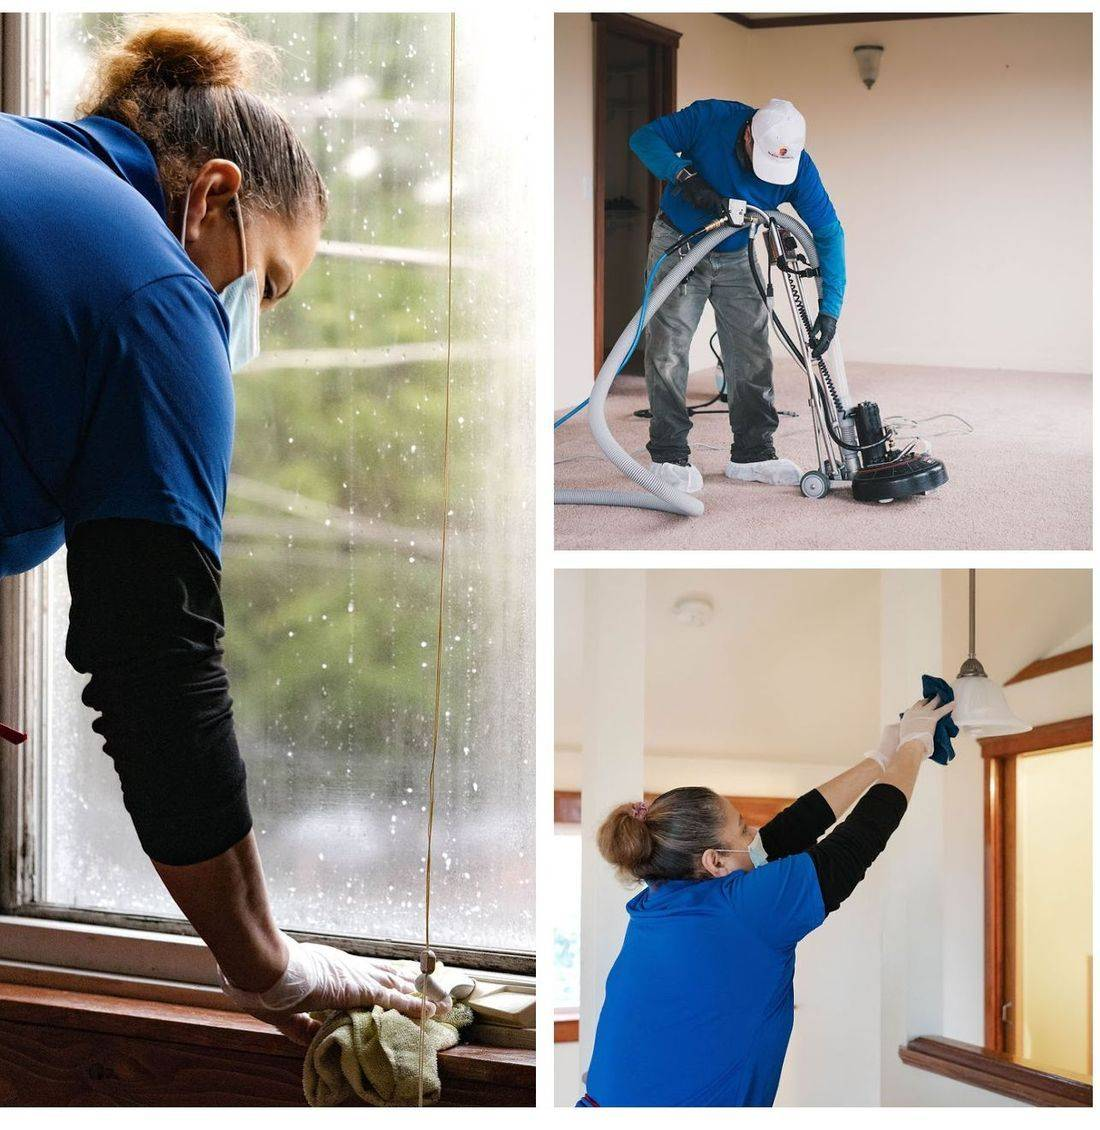 House Cleaning Services in Bothell WA